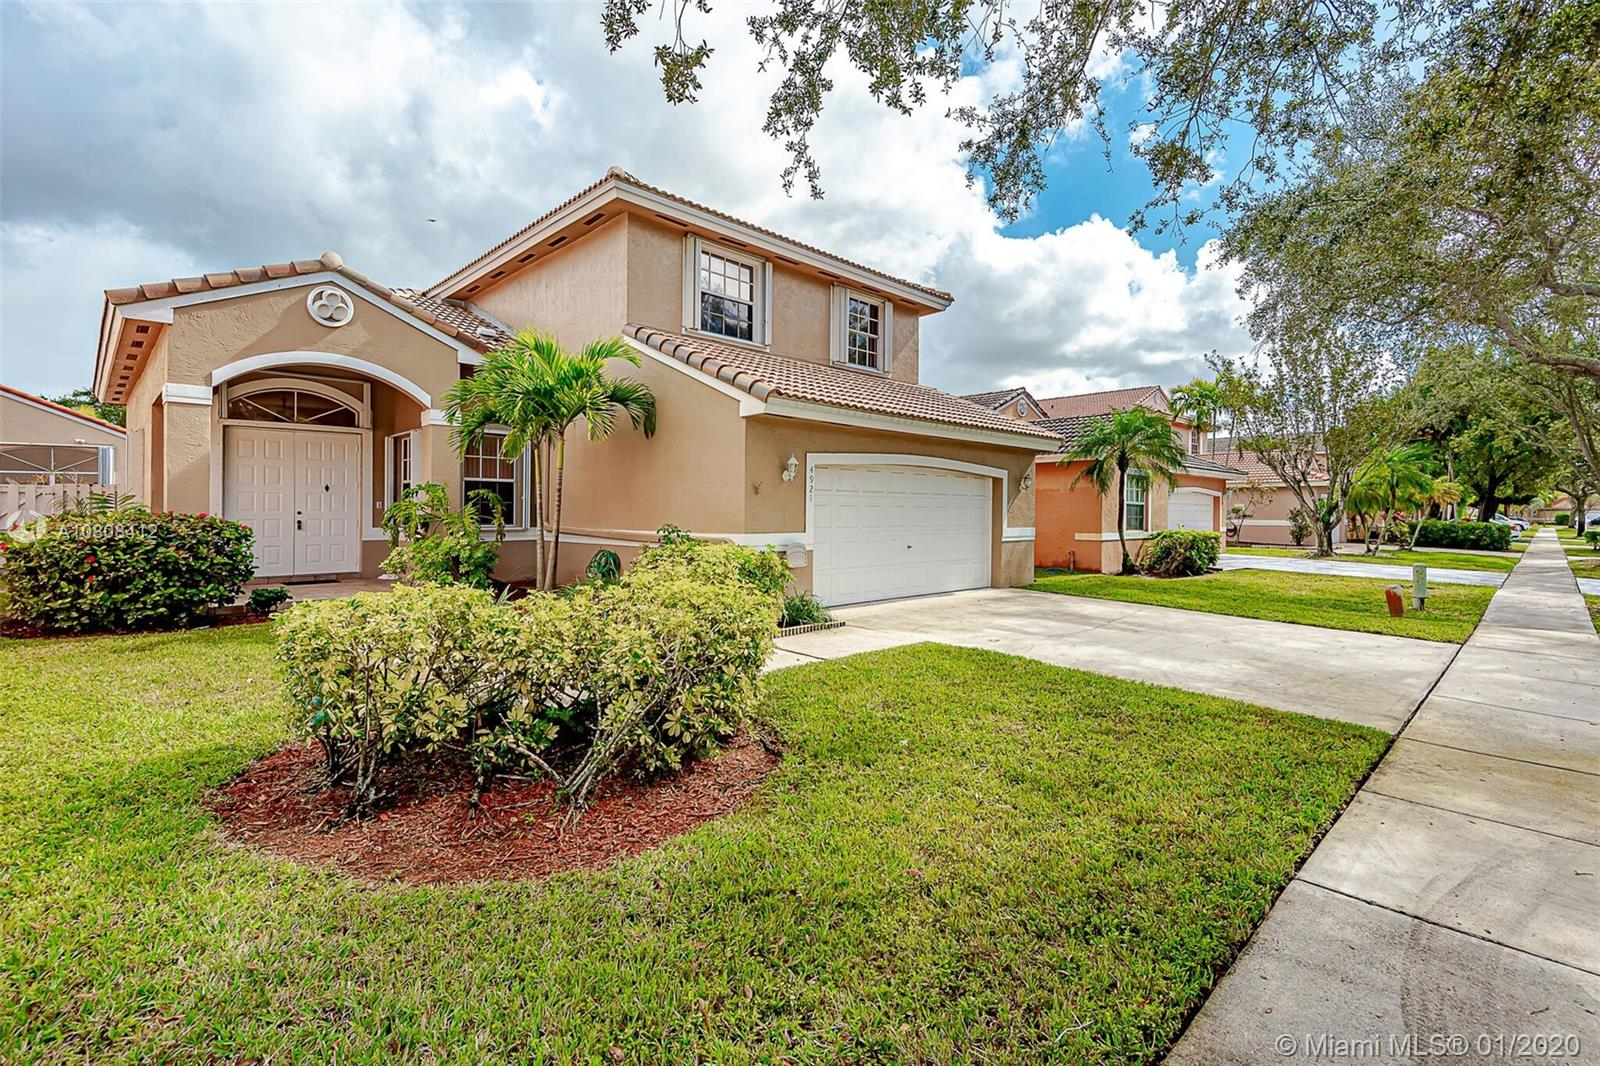 4921 SW 152nd Ave, Miramar, FL 33027